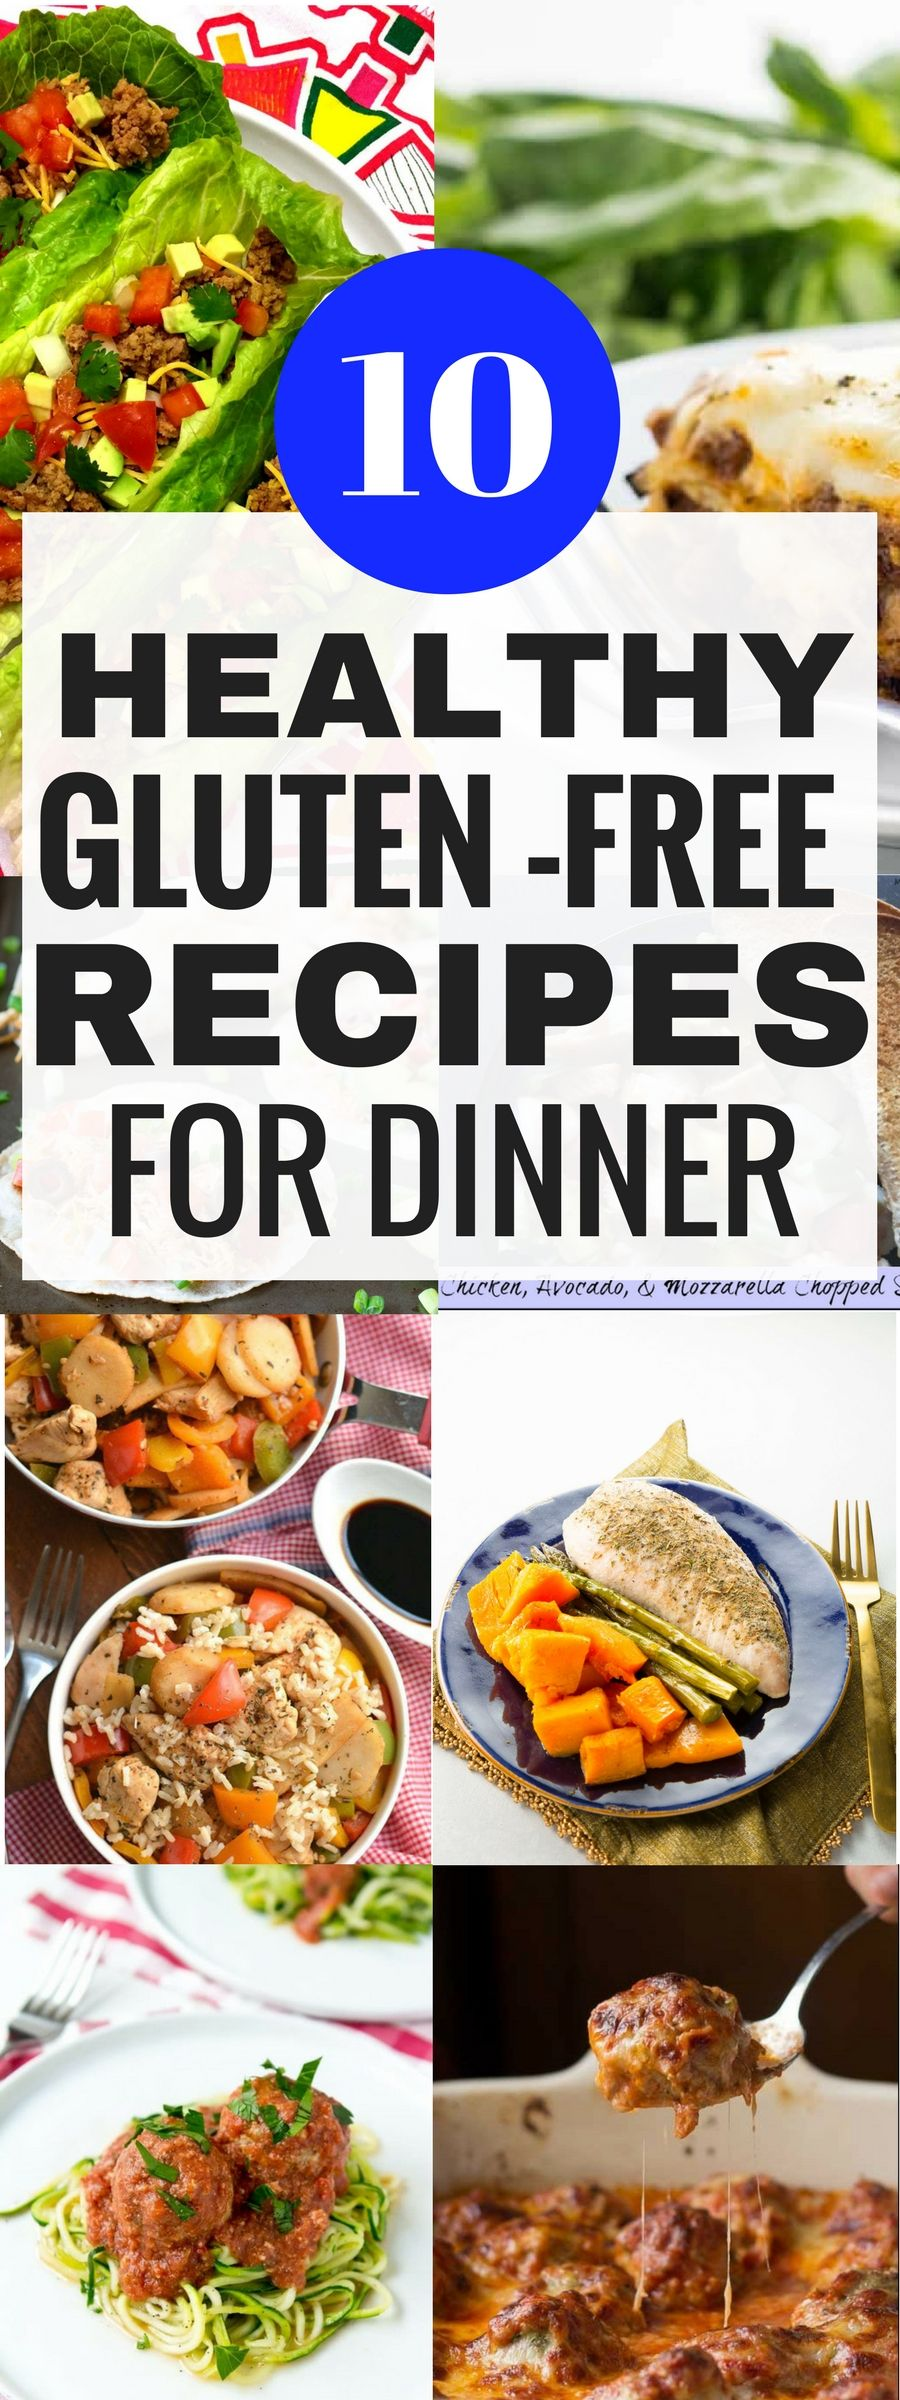 These 10 Gluten Free Recipes Are The Best Theyre Awesome